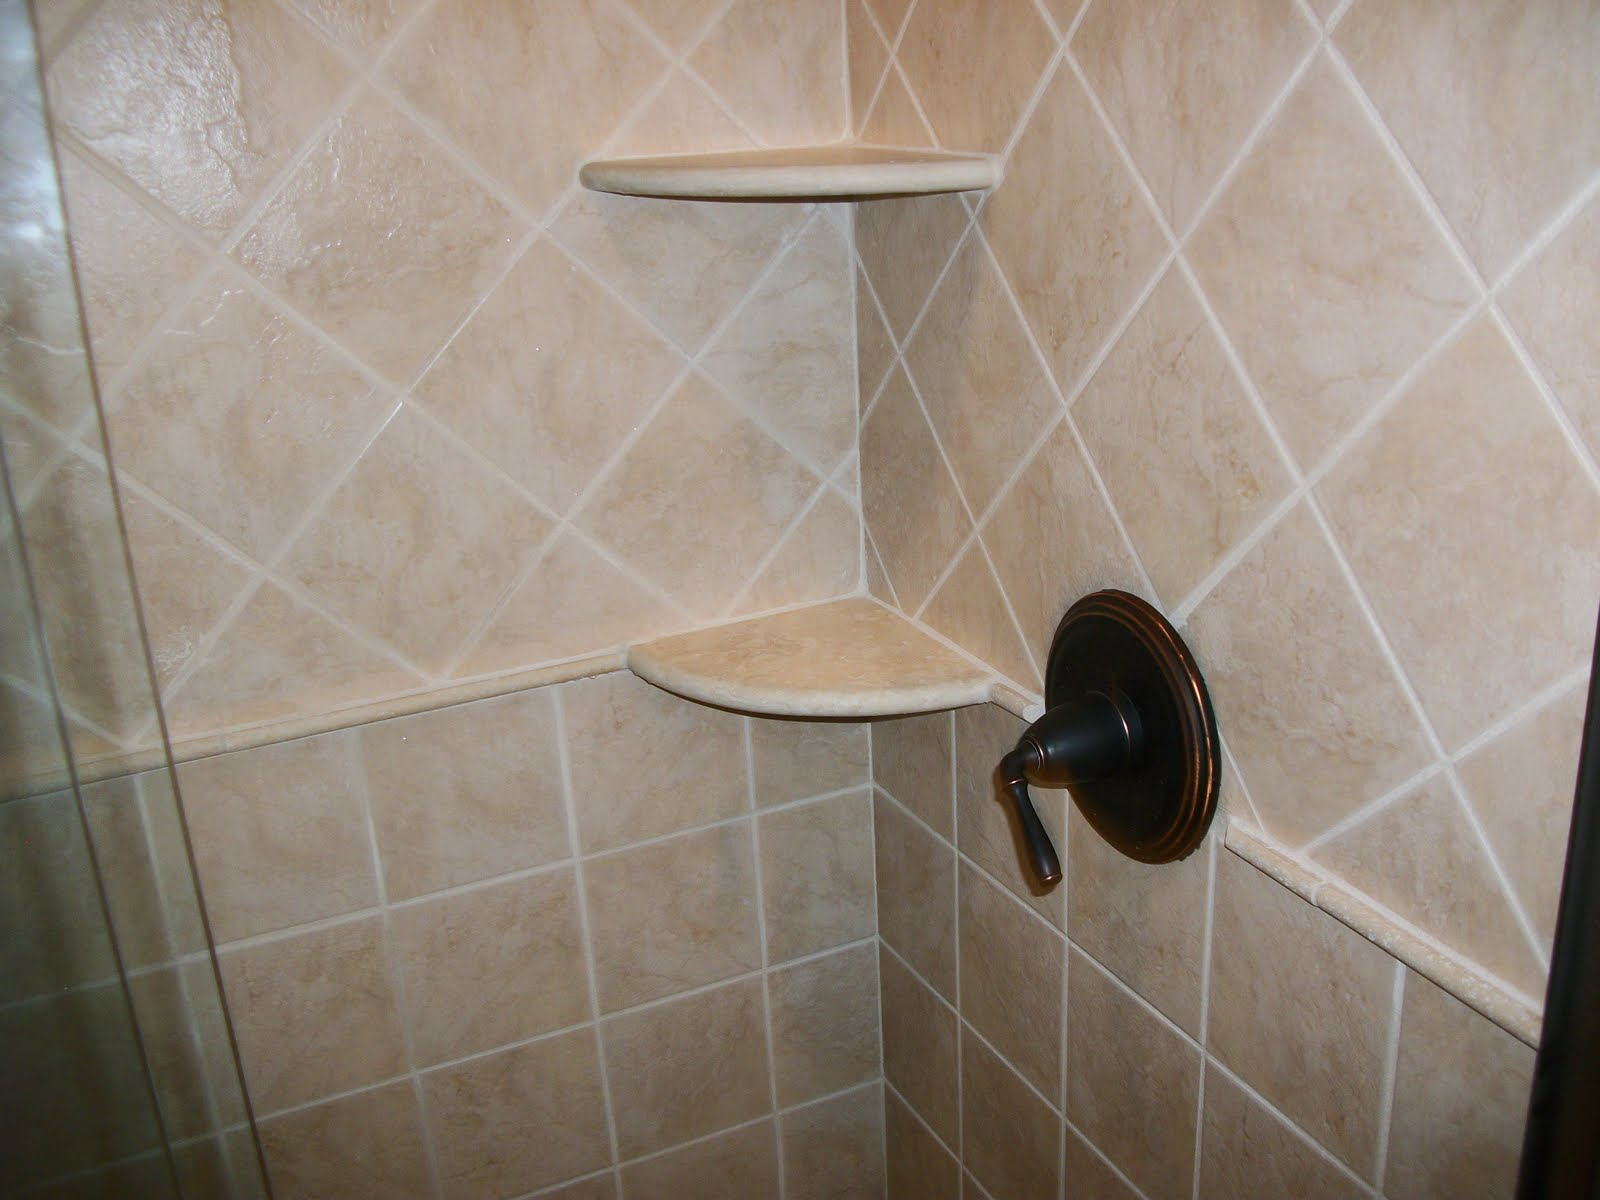 Home Remodeling And Improvements Tips And How To S Tile